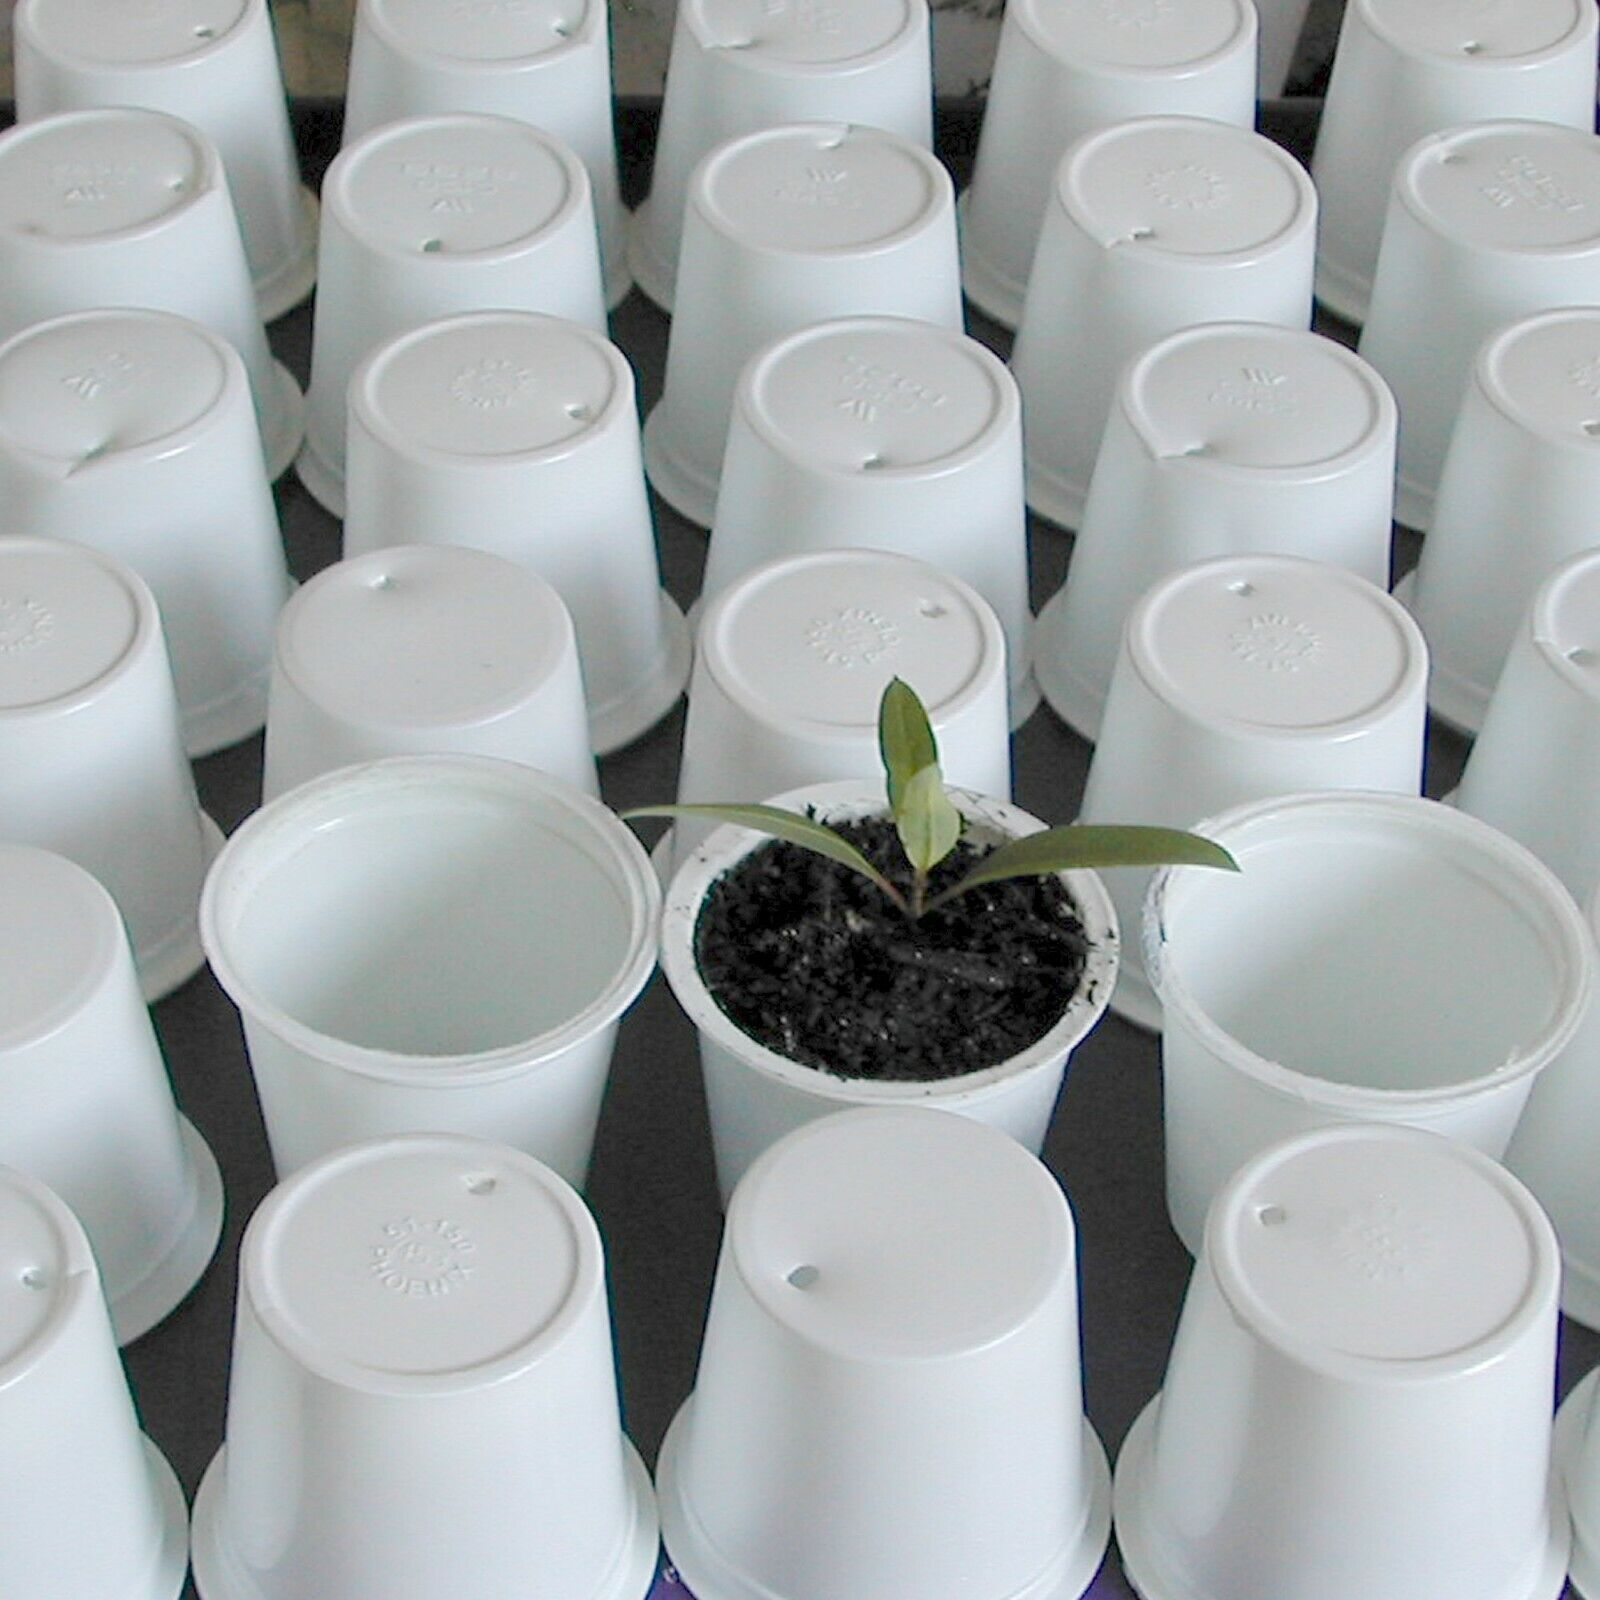 Box of 400 Garden Seedling Planting Plastic Cups Arts Crafts Growing Baby Plants